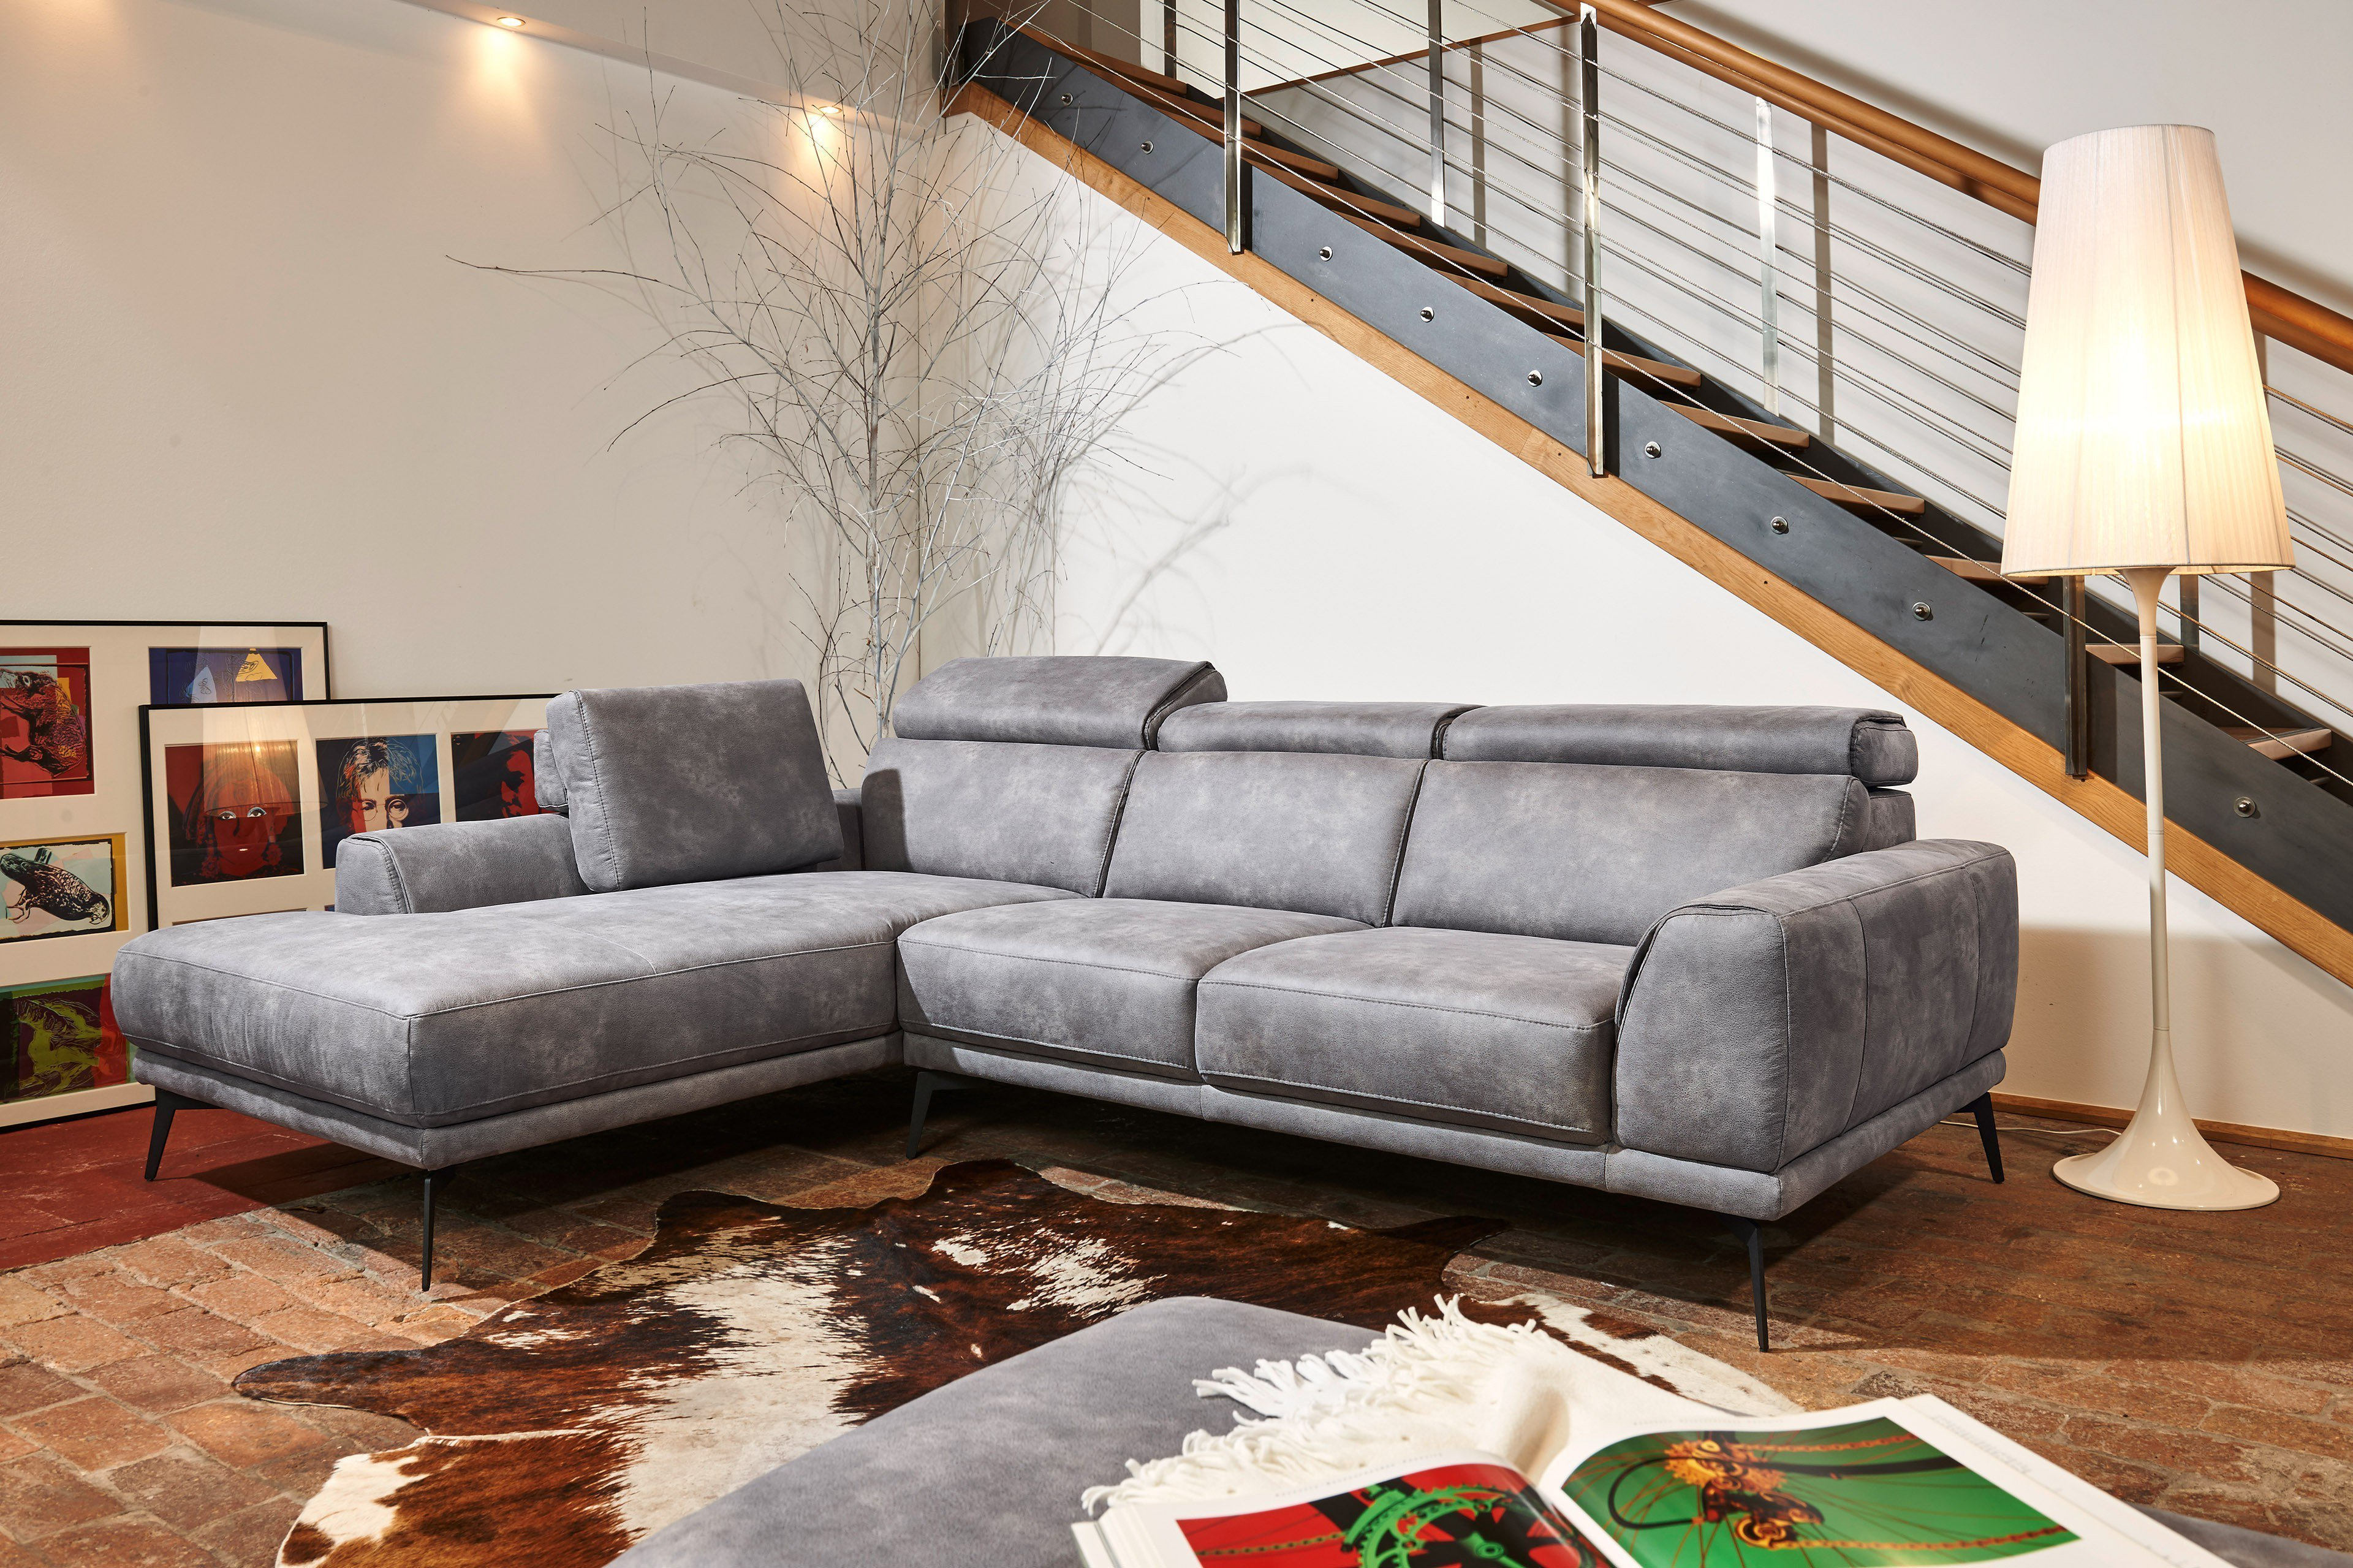 sofa mit boxen artanova s athena sofa shows that couches can go multimedia too. Black Bedroom Furniture Sets. Home Design Ideas